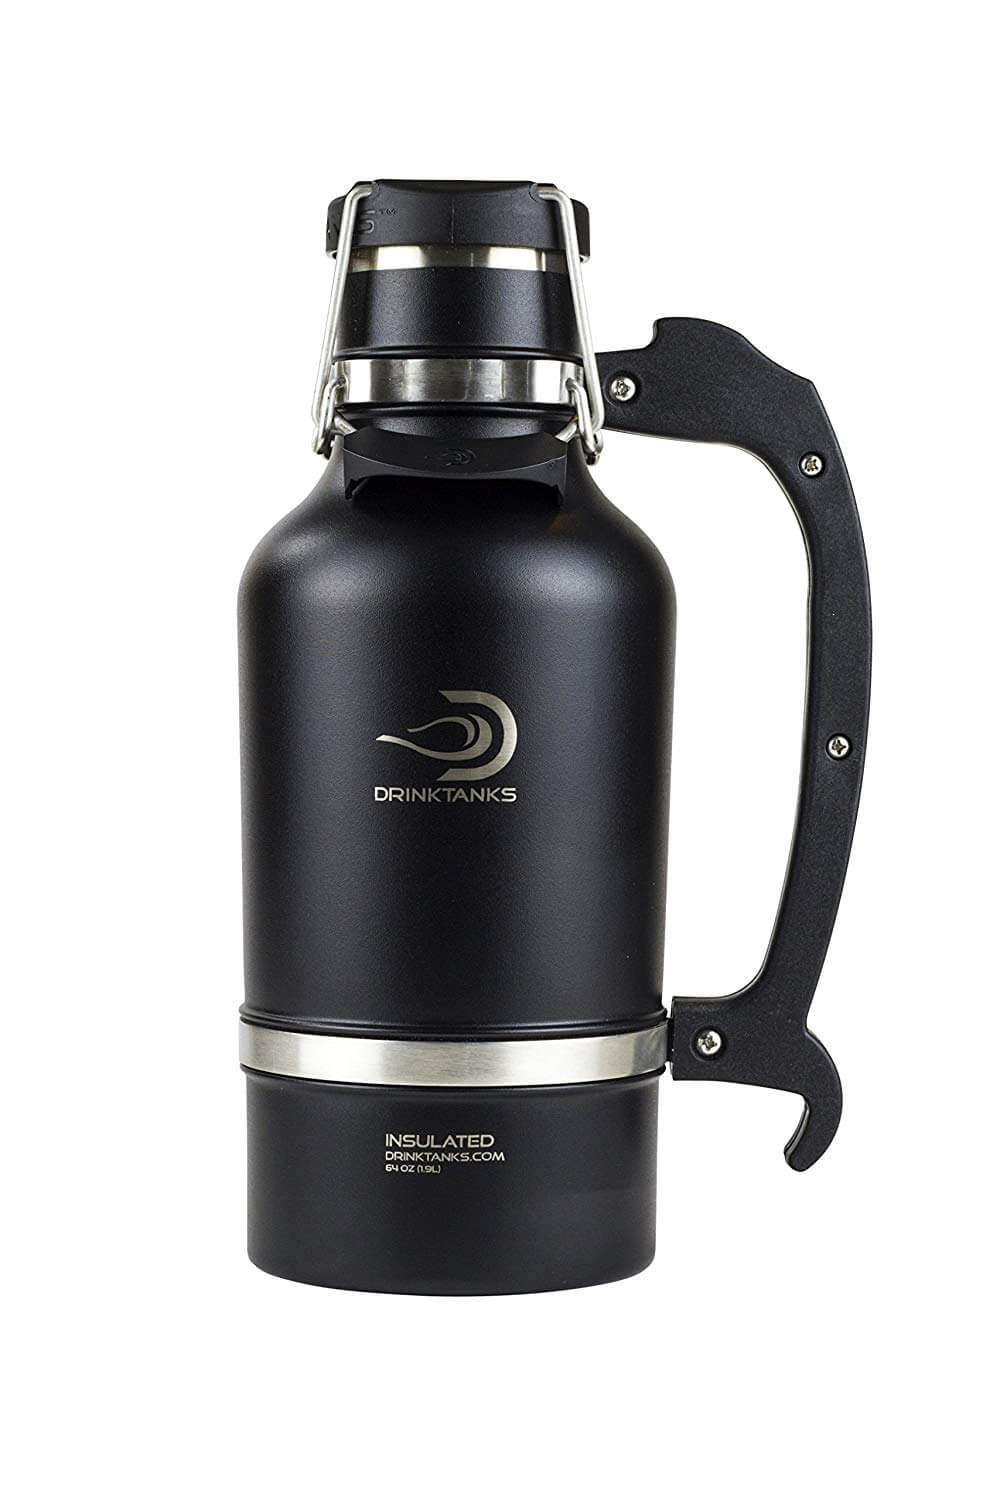 Drink Tanks Vacuum Insulated Stainless Steel Beer Growler